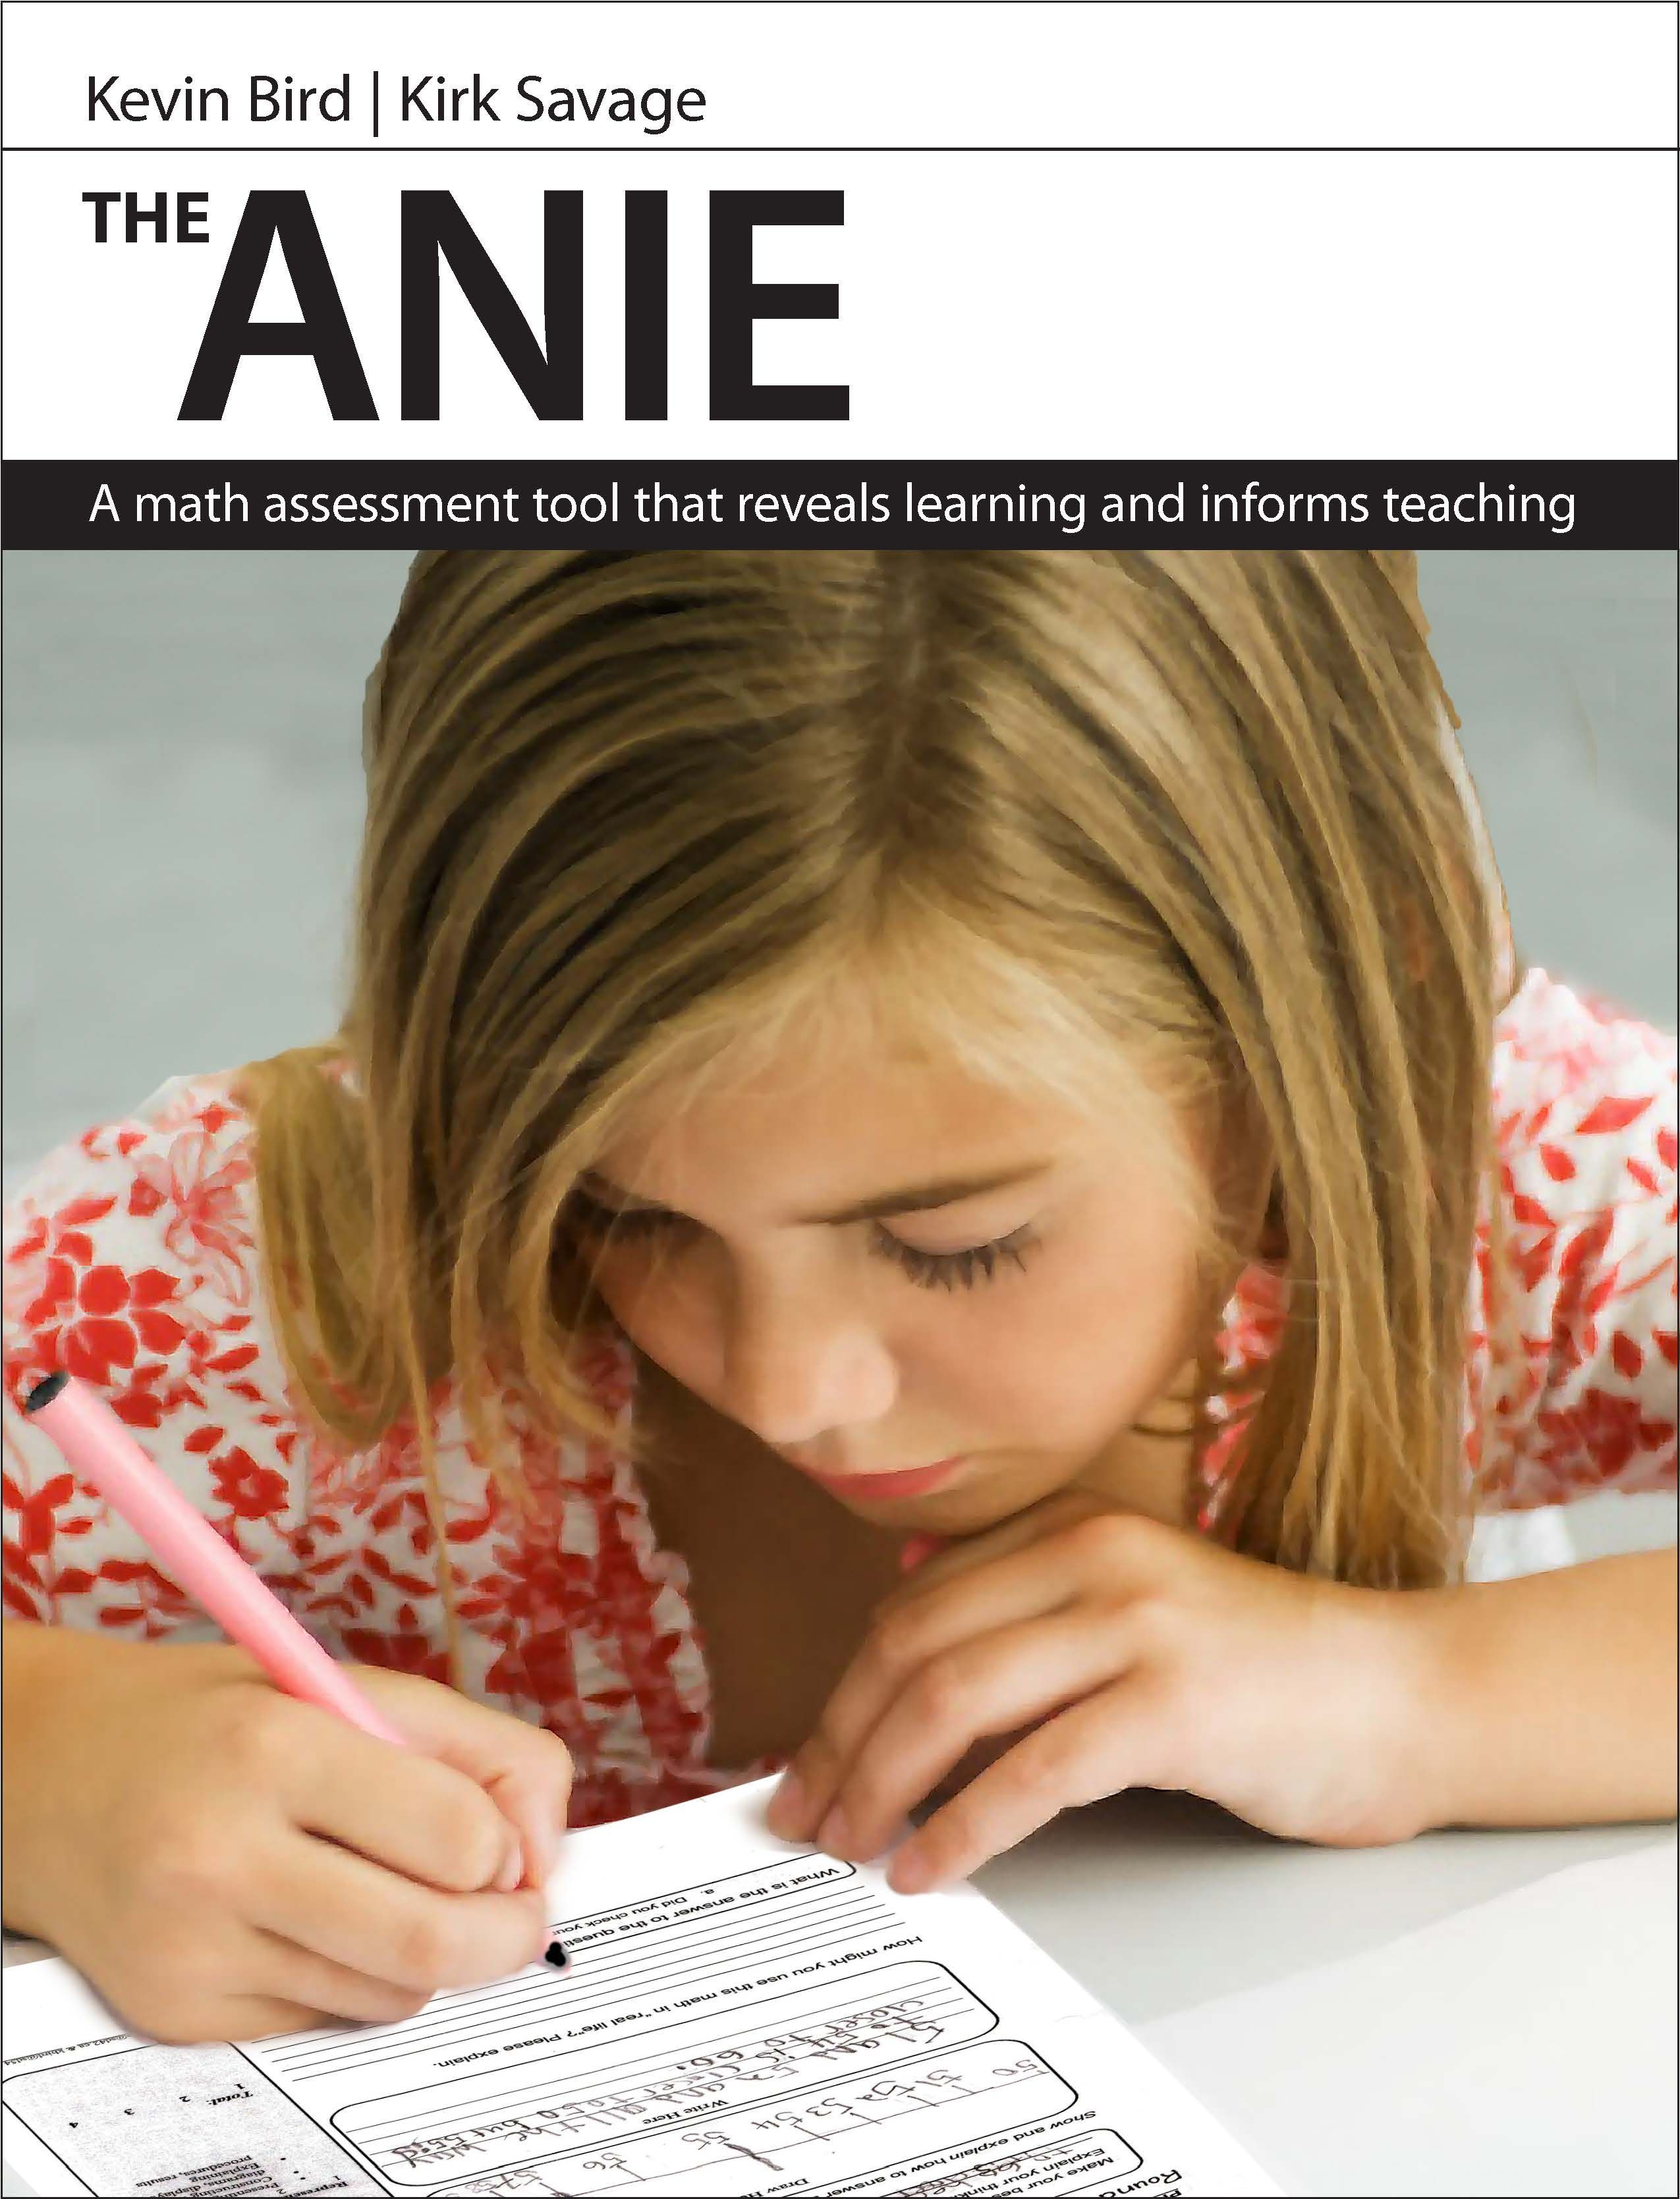 The ANIE: A Math Assessment Tool that Reveals Learning and Informs Teaching by Kevin Bird & Kirk Savage